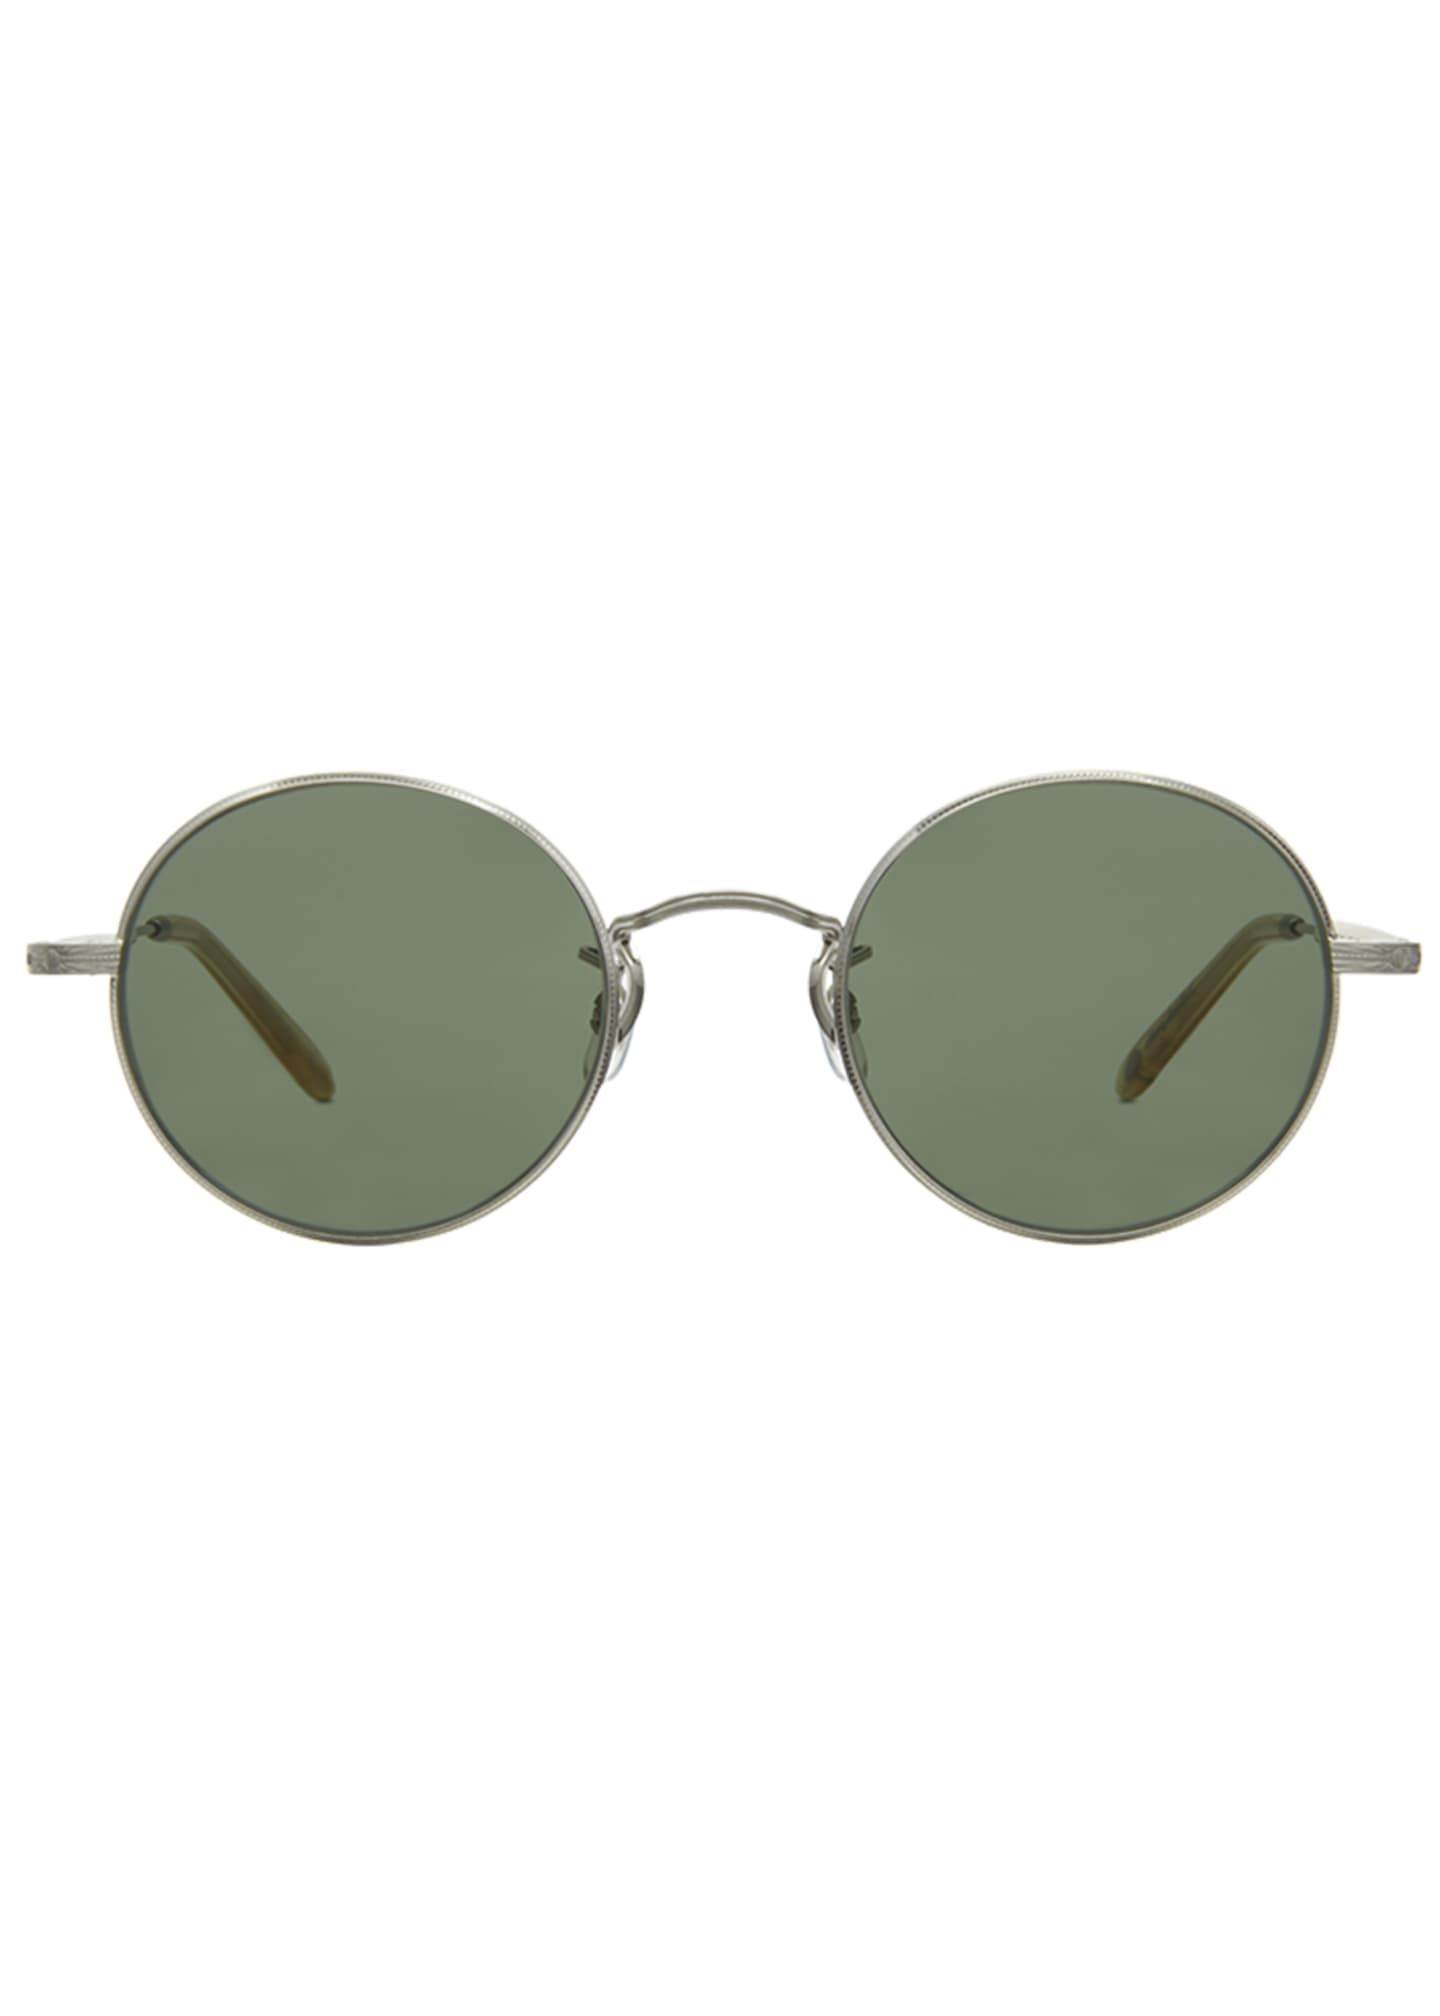 Image 2 of 2: Men's Lovers 46 Round Sunglasses